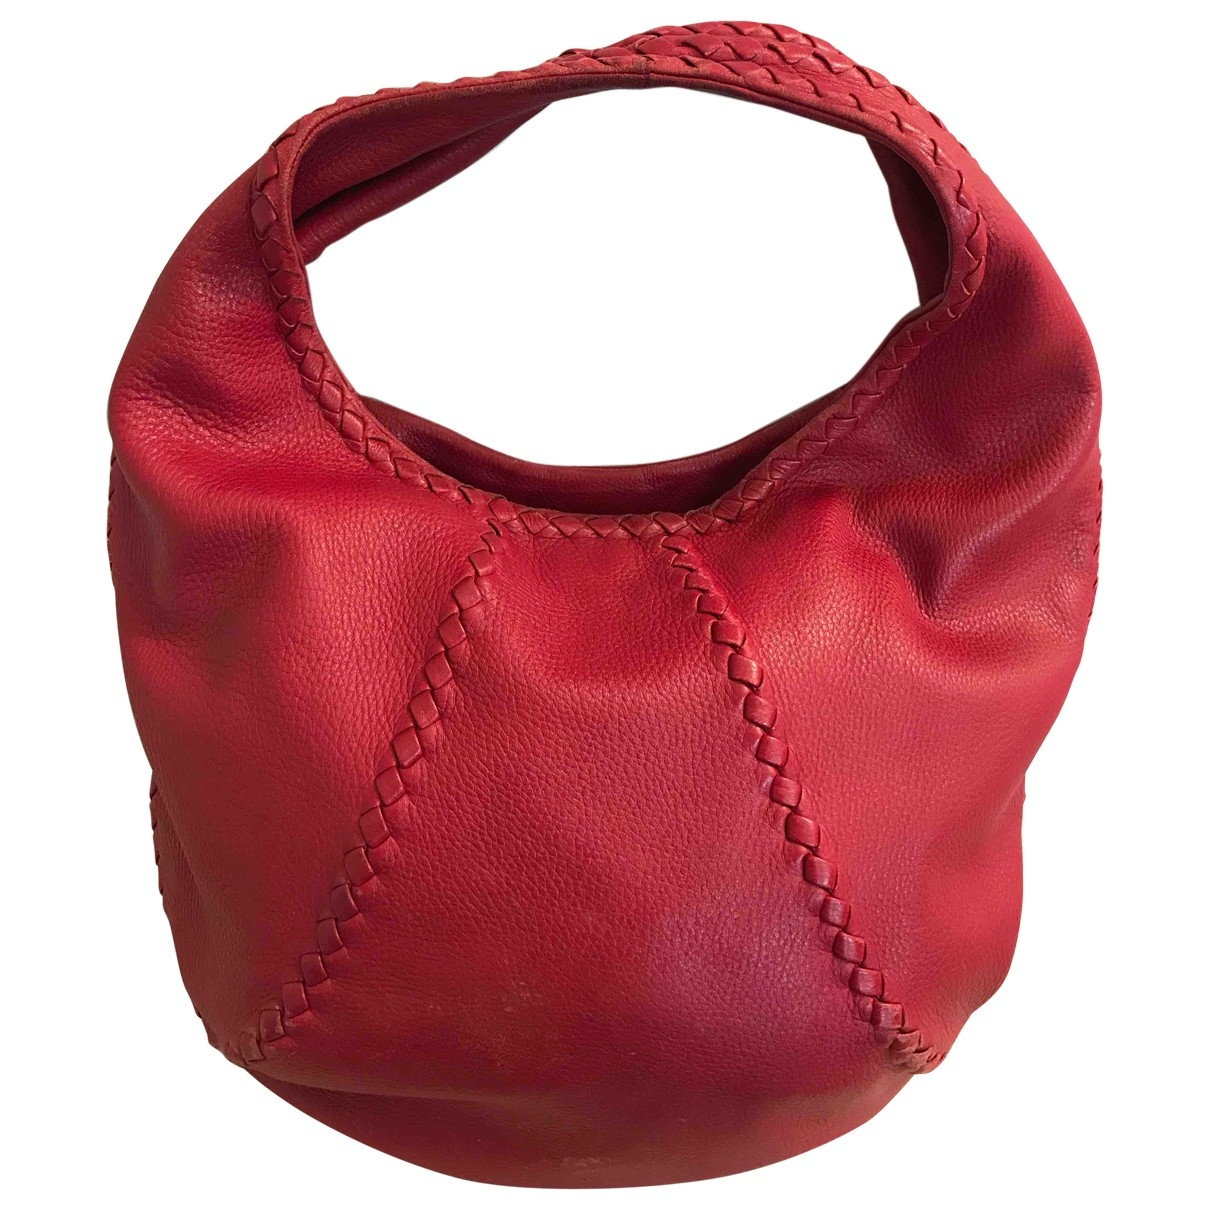 Bottega Veneta \N Red Leather handbag for Women \N